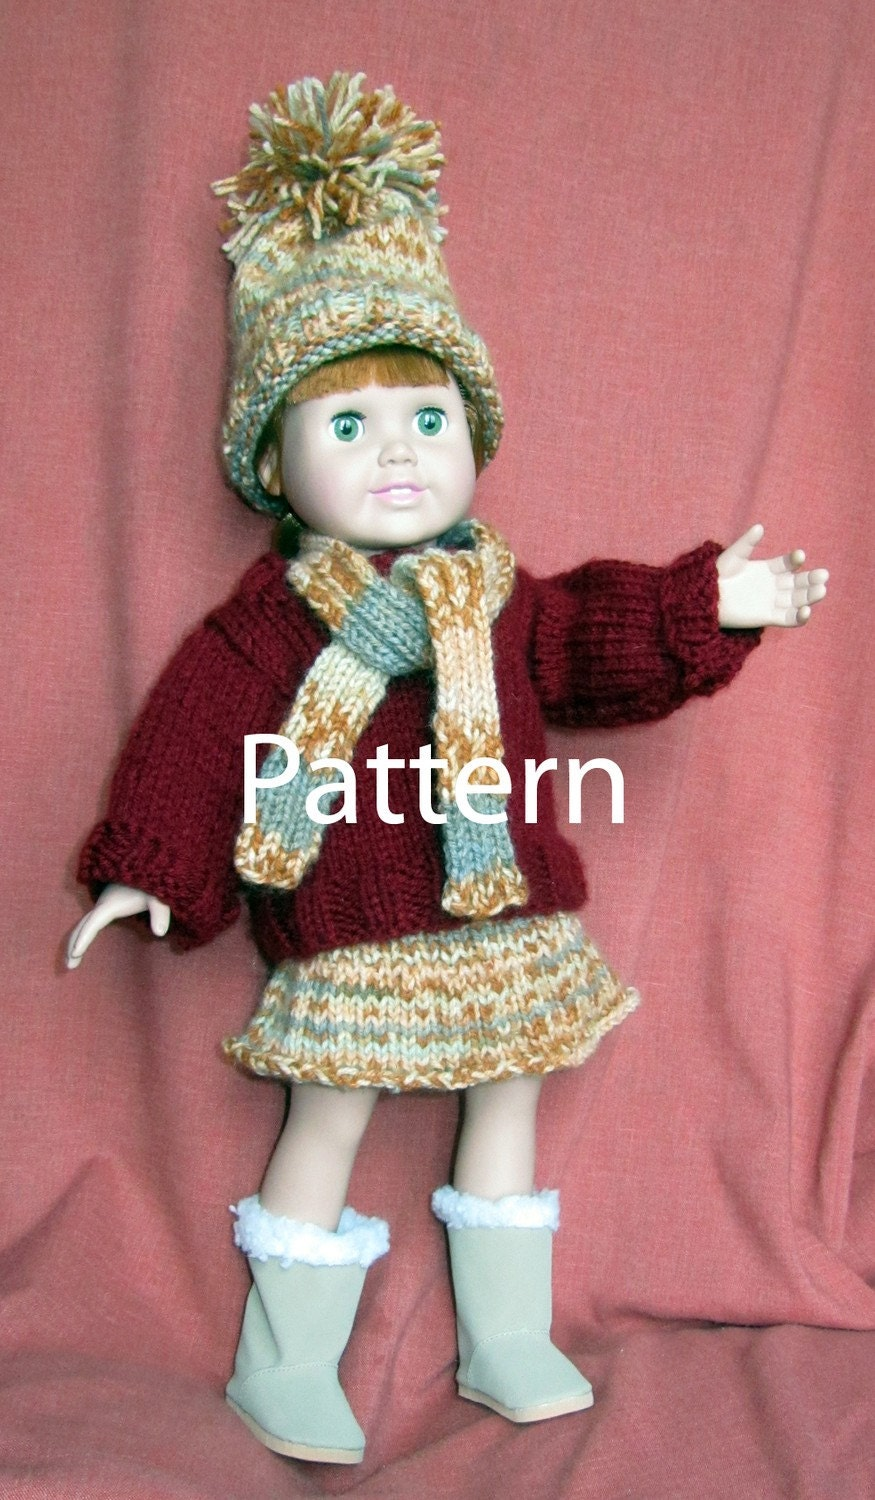 Knitting Pattern For Dolls Skirt : 18 Inch Doll Knit Pattern Sweater Skirt by EvensensProductions